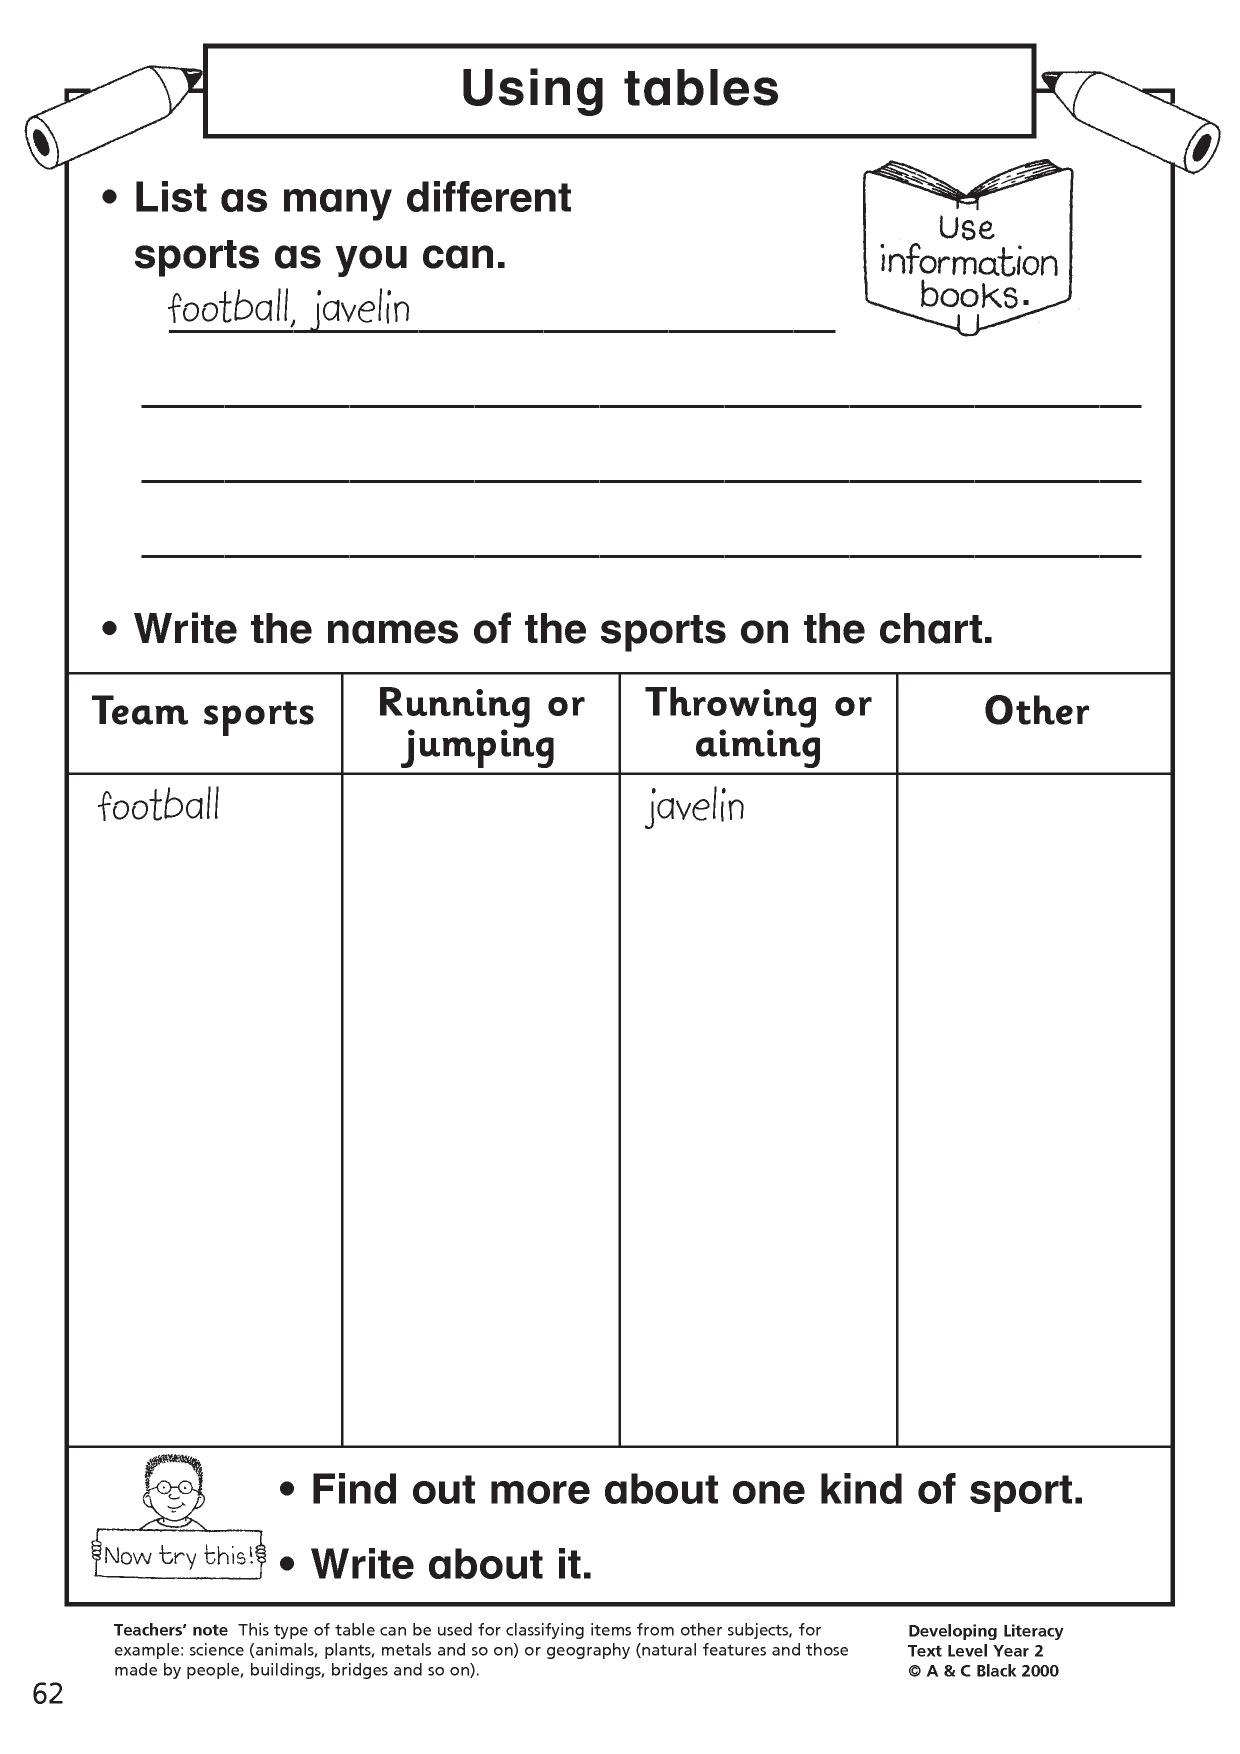 Writing composition resources for fs ks1 and ks2 for Report writing template ks1